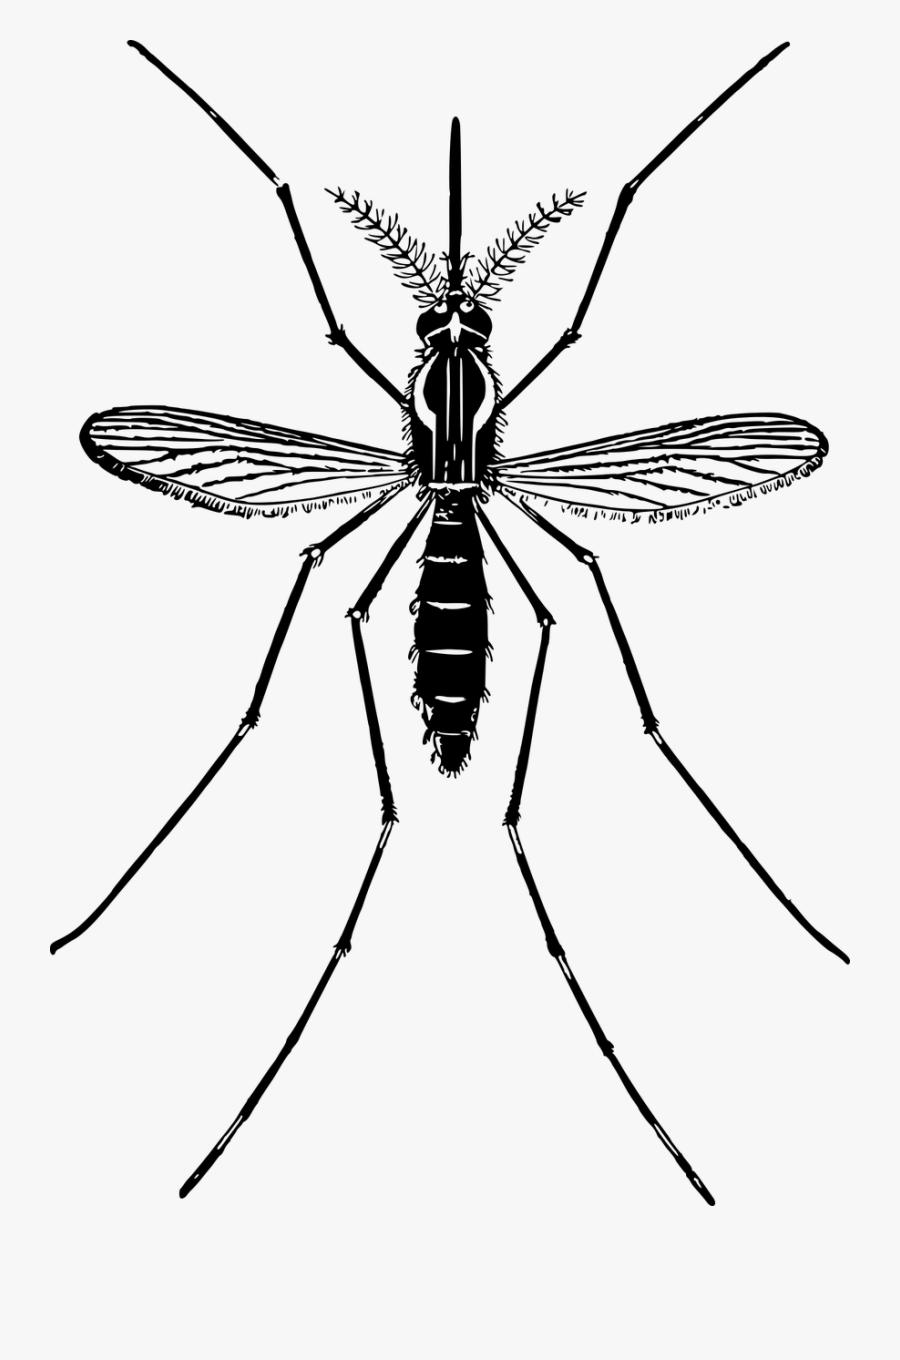 Animal Fly Insect Free Picture - Clip Art Mosquitoes, Transparent Clipart